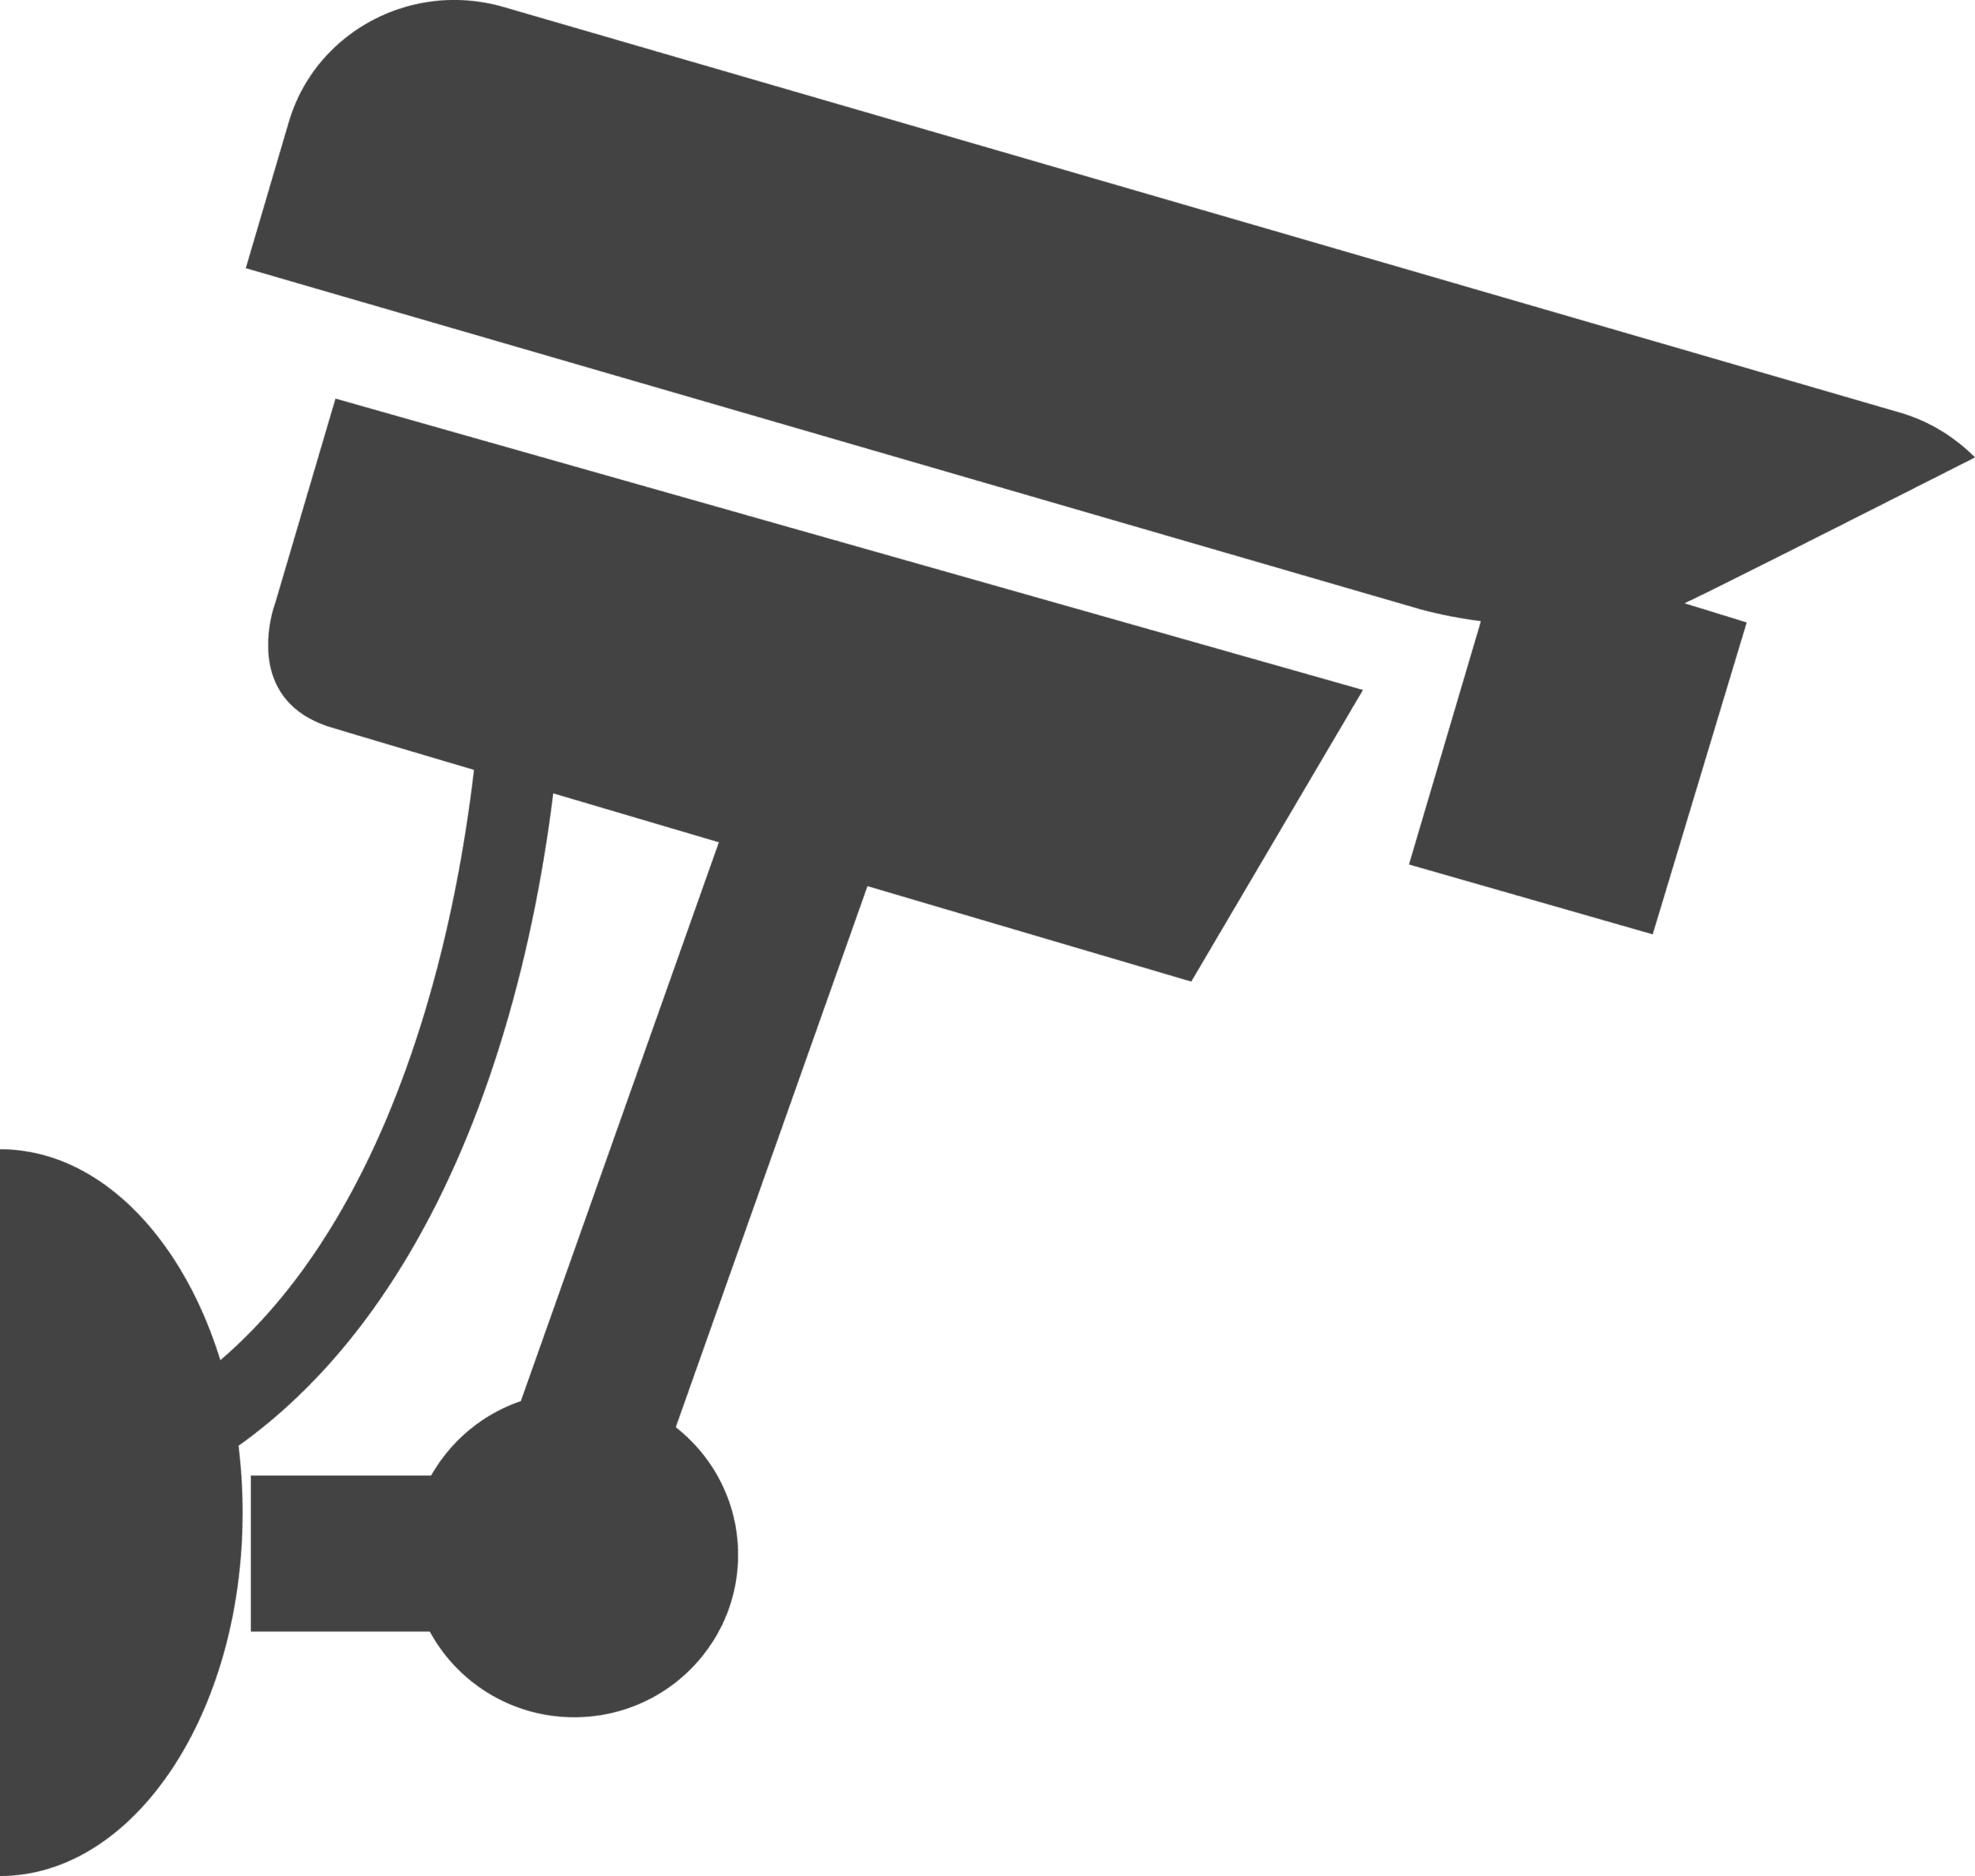 Security camera registration